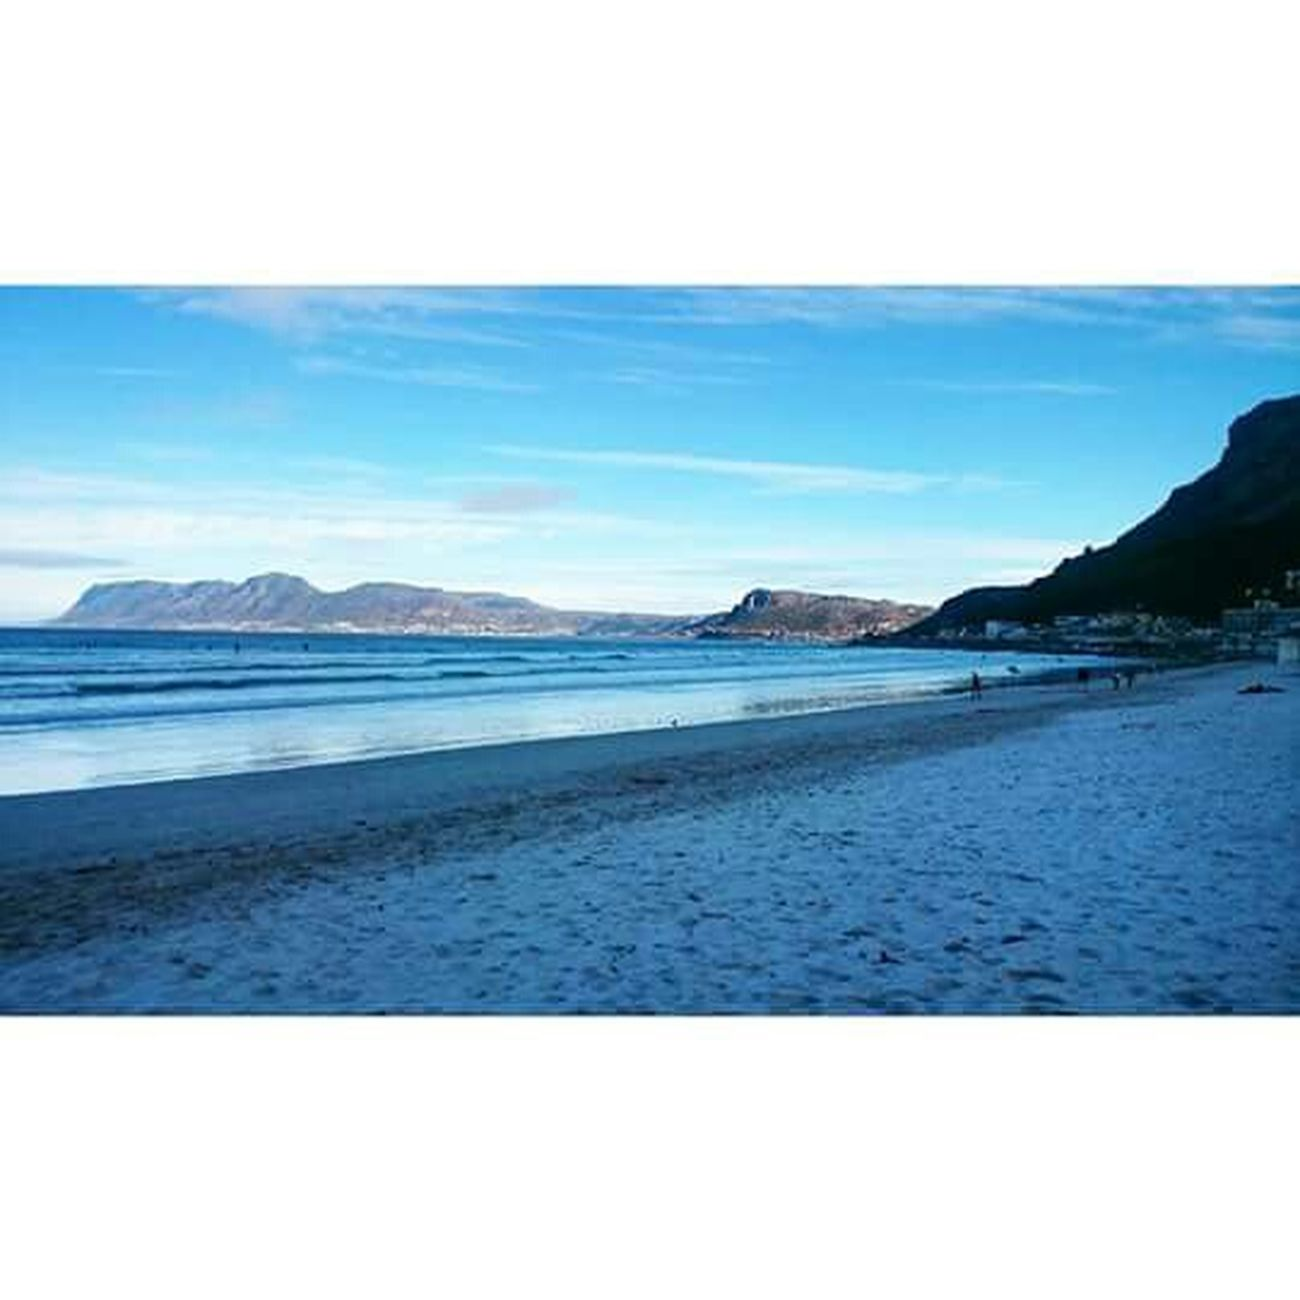 Mycity Capetown South Africa Capetownliving Cape Town Cape Town ILoveMyCity Hipster Travel AtPeace Lovely Weather